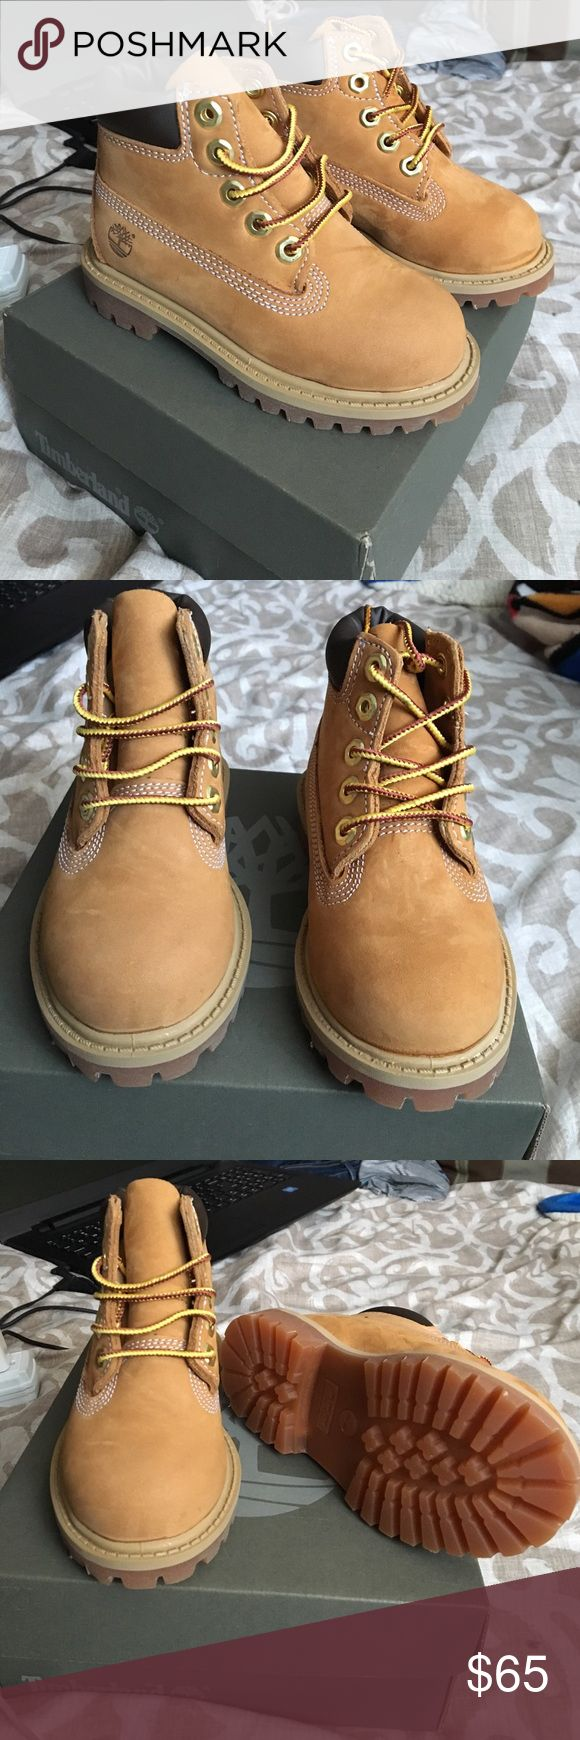 Brand New Timberlands for toddler Brand new with box Timberlands for toddler. Wonderful addition to any little boys collection. Never worn. Excellent condition. Feel free to message me with any questions. Timberland Shoes Boots